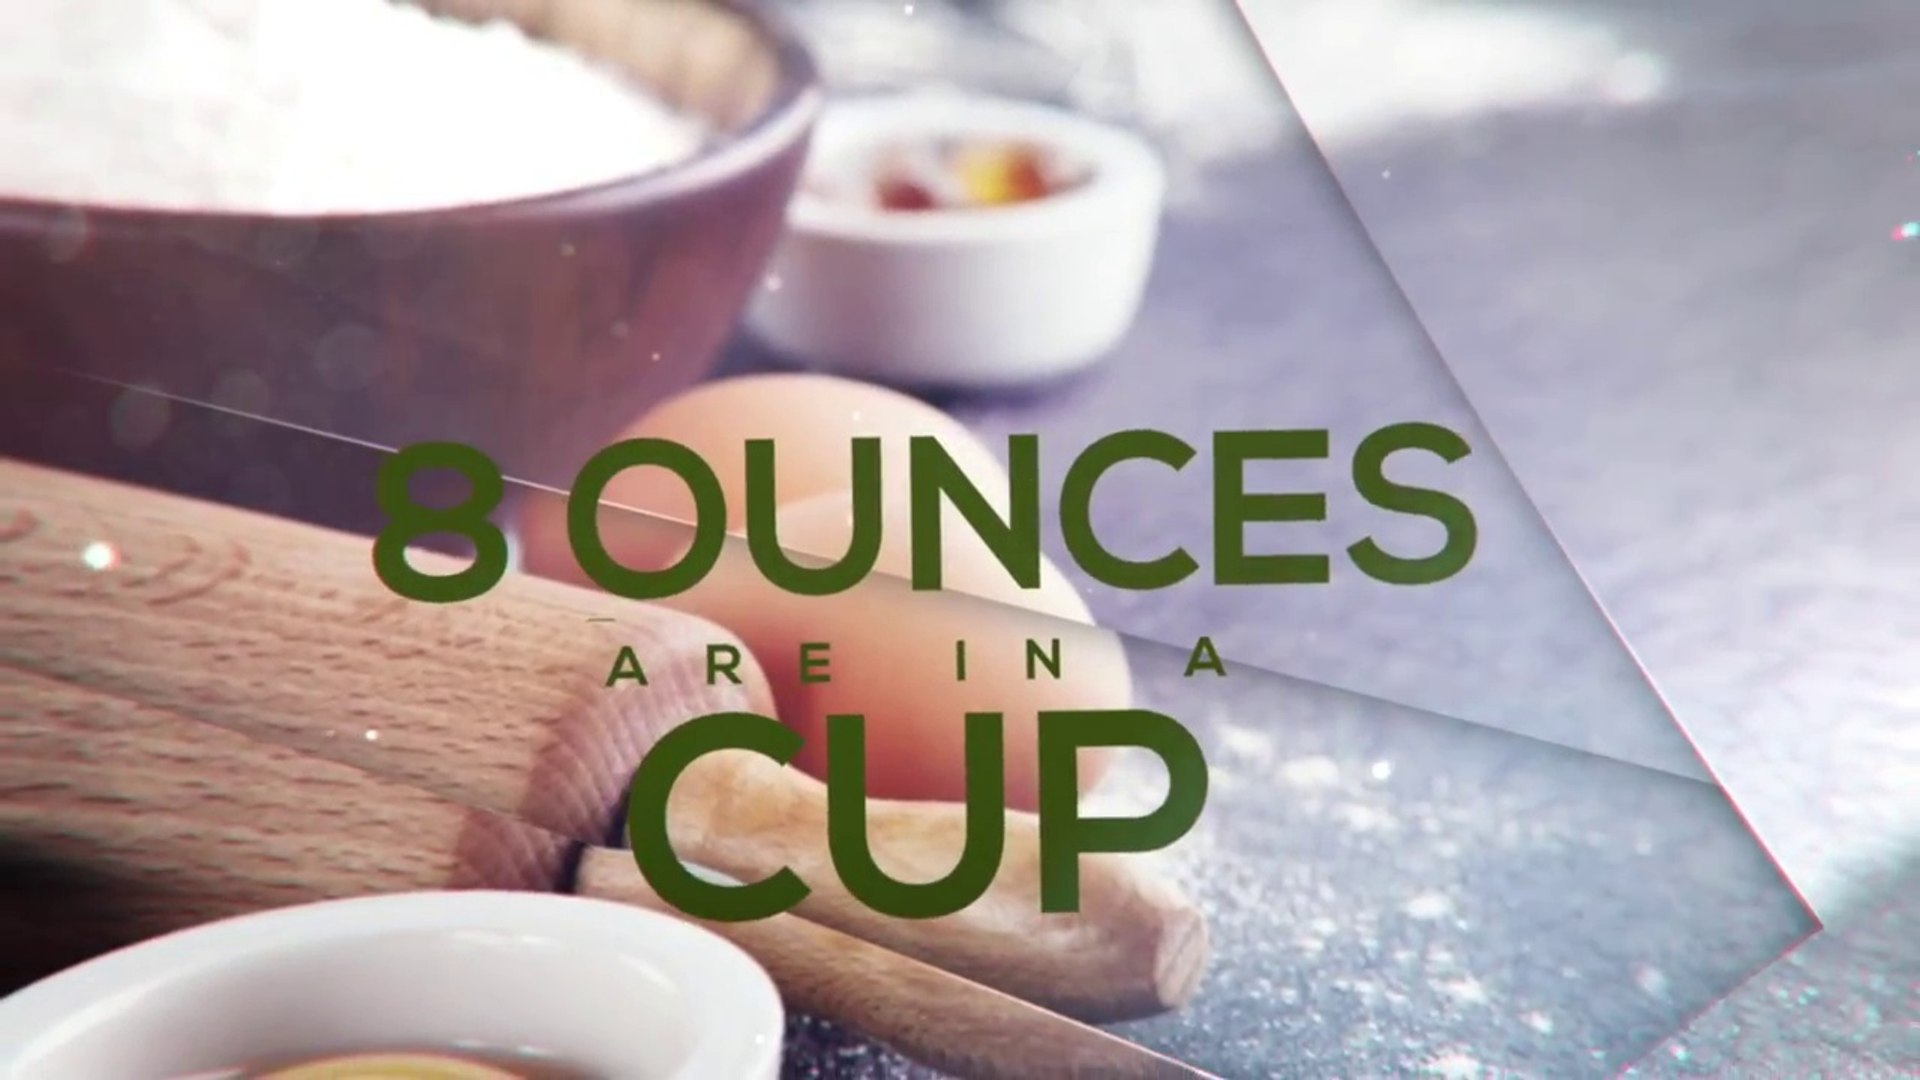 How Many Ounces In A Cup Video Dailymotion